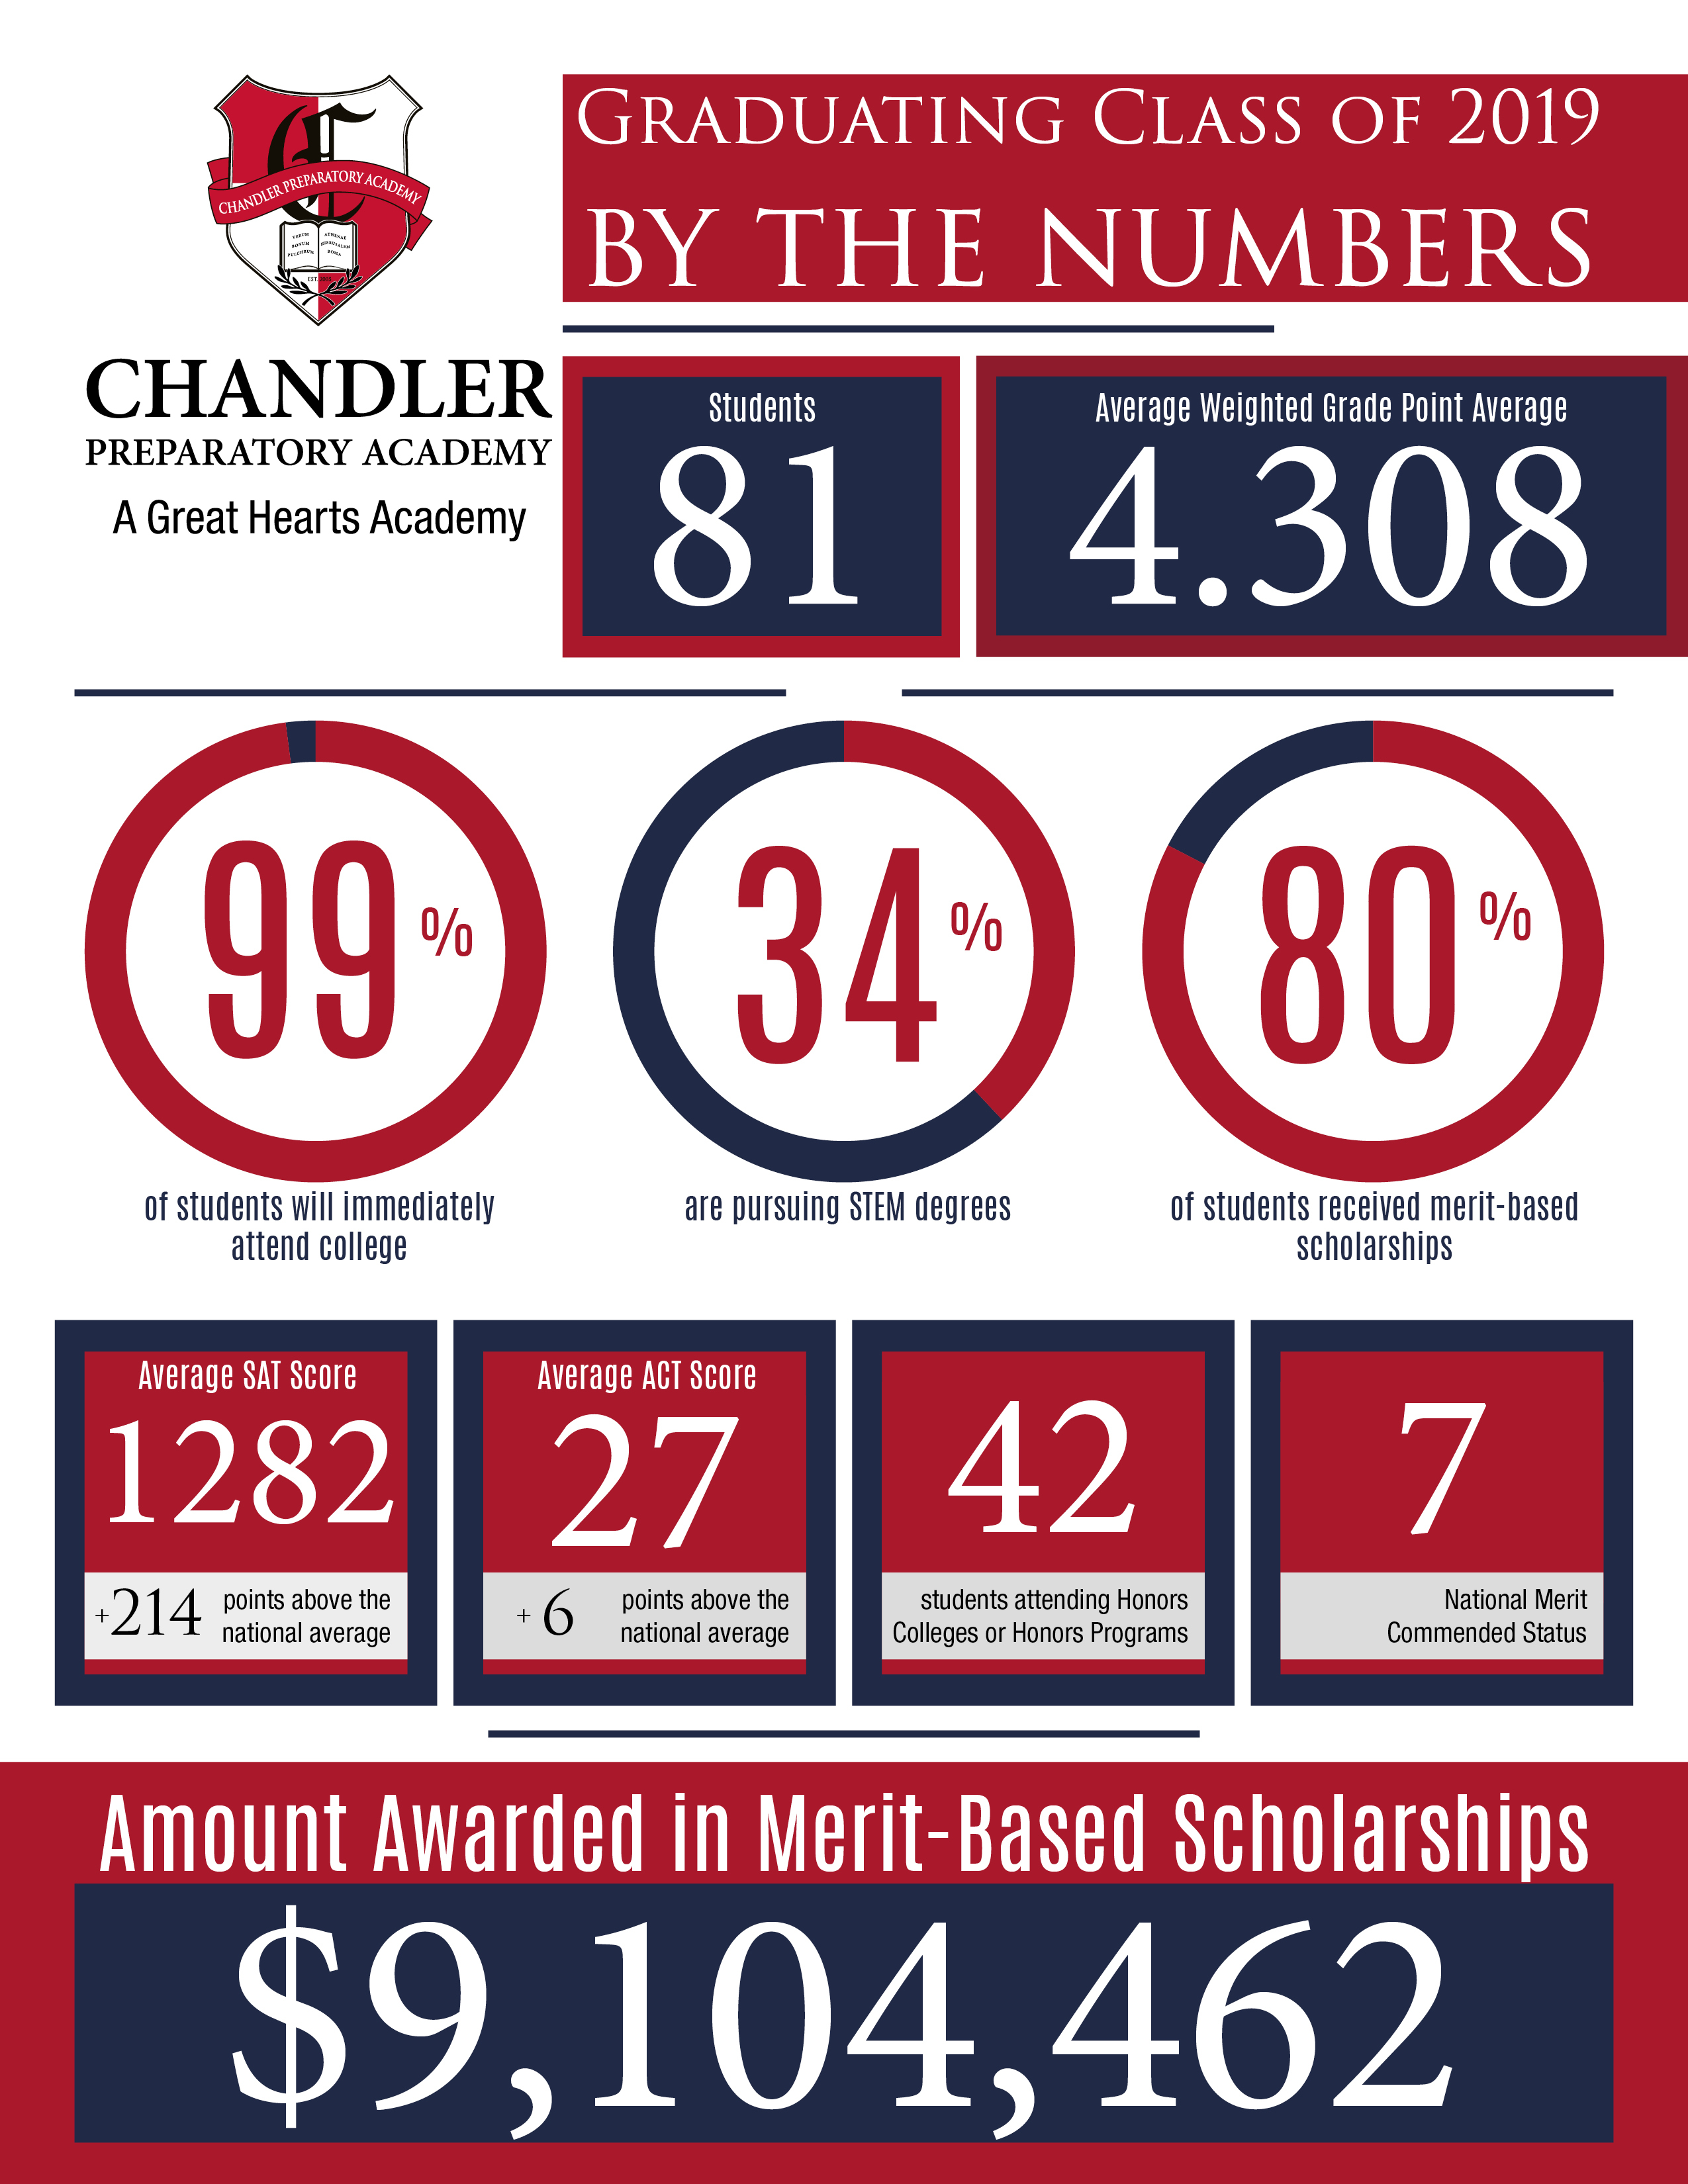 info graphic, 9.1 million in scholarships